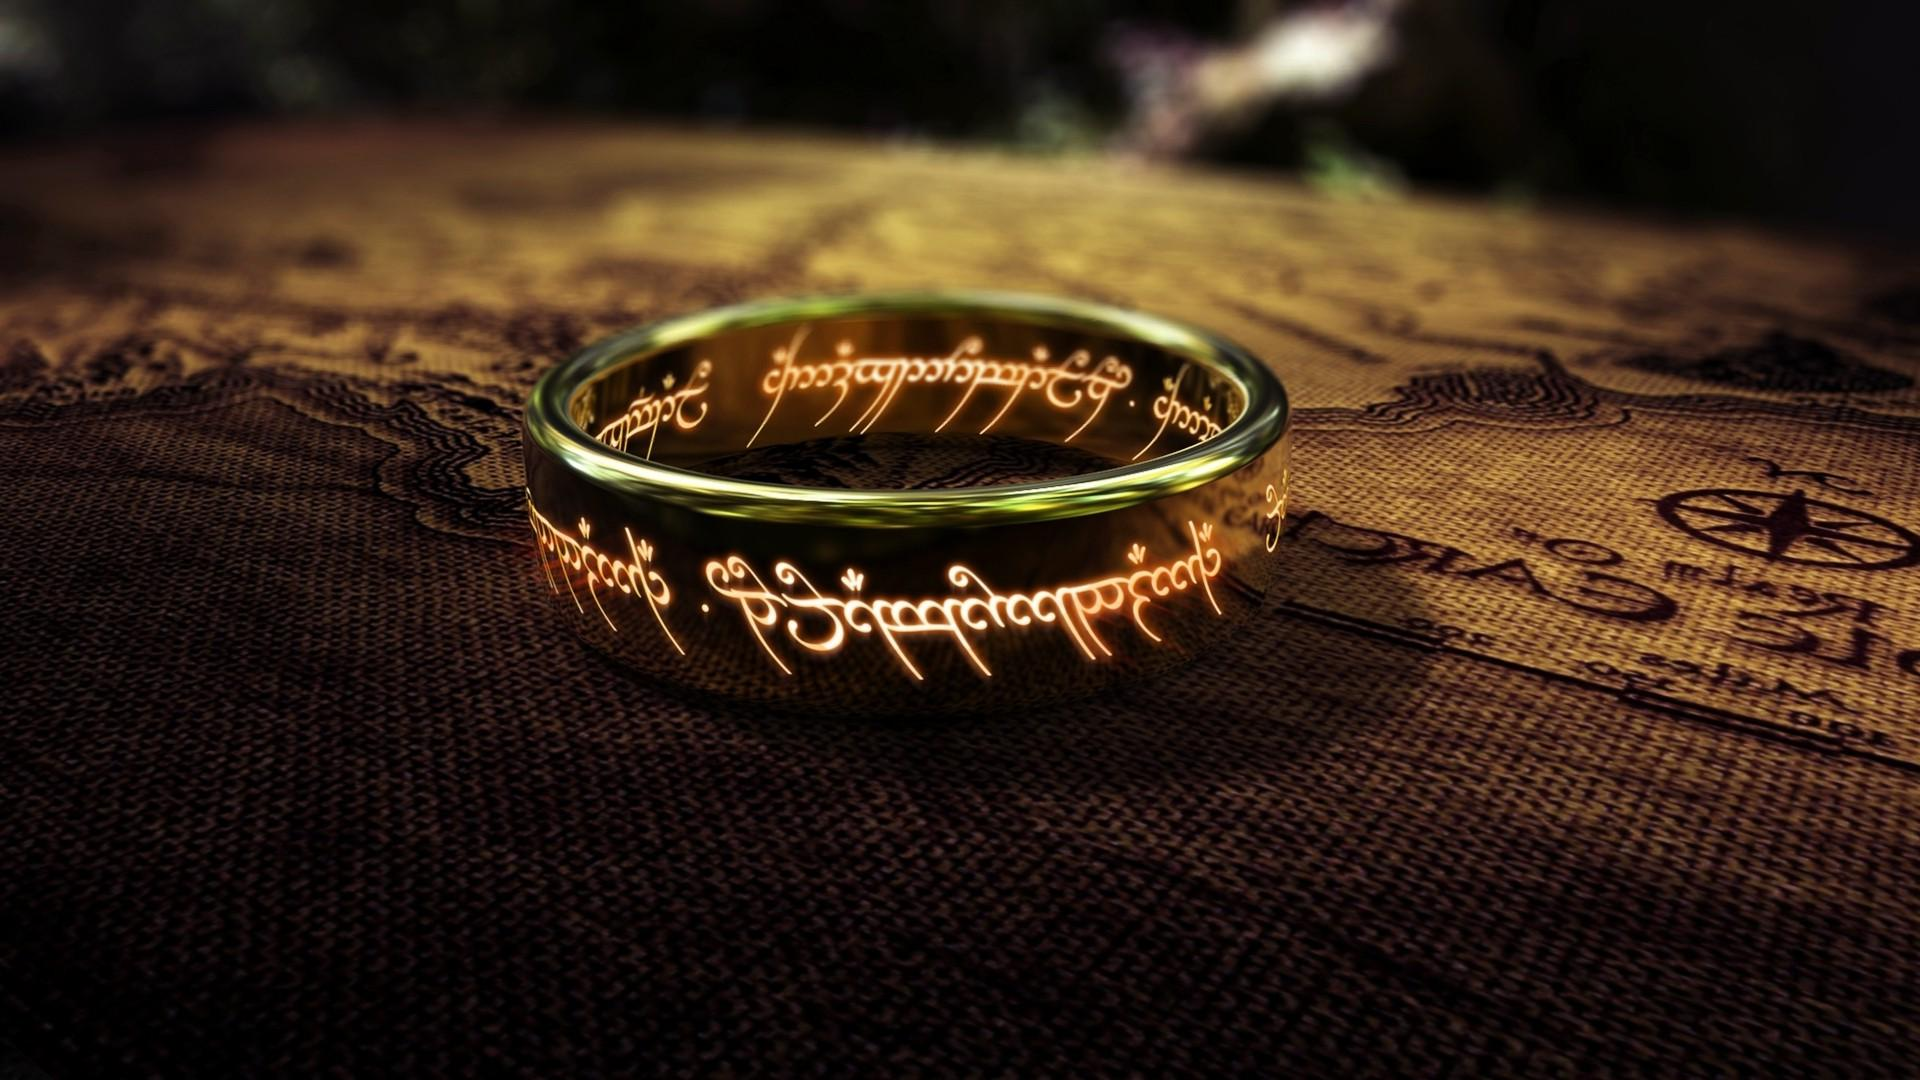 Lord Of The Rings Wallpapers Desktop 1920x1080